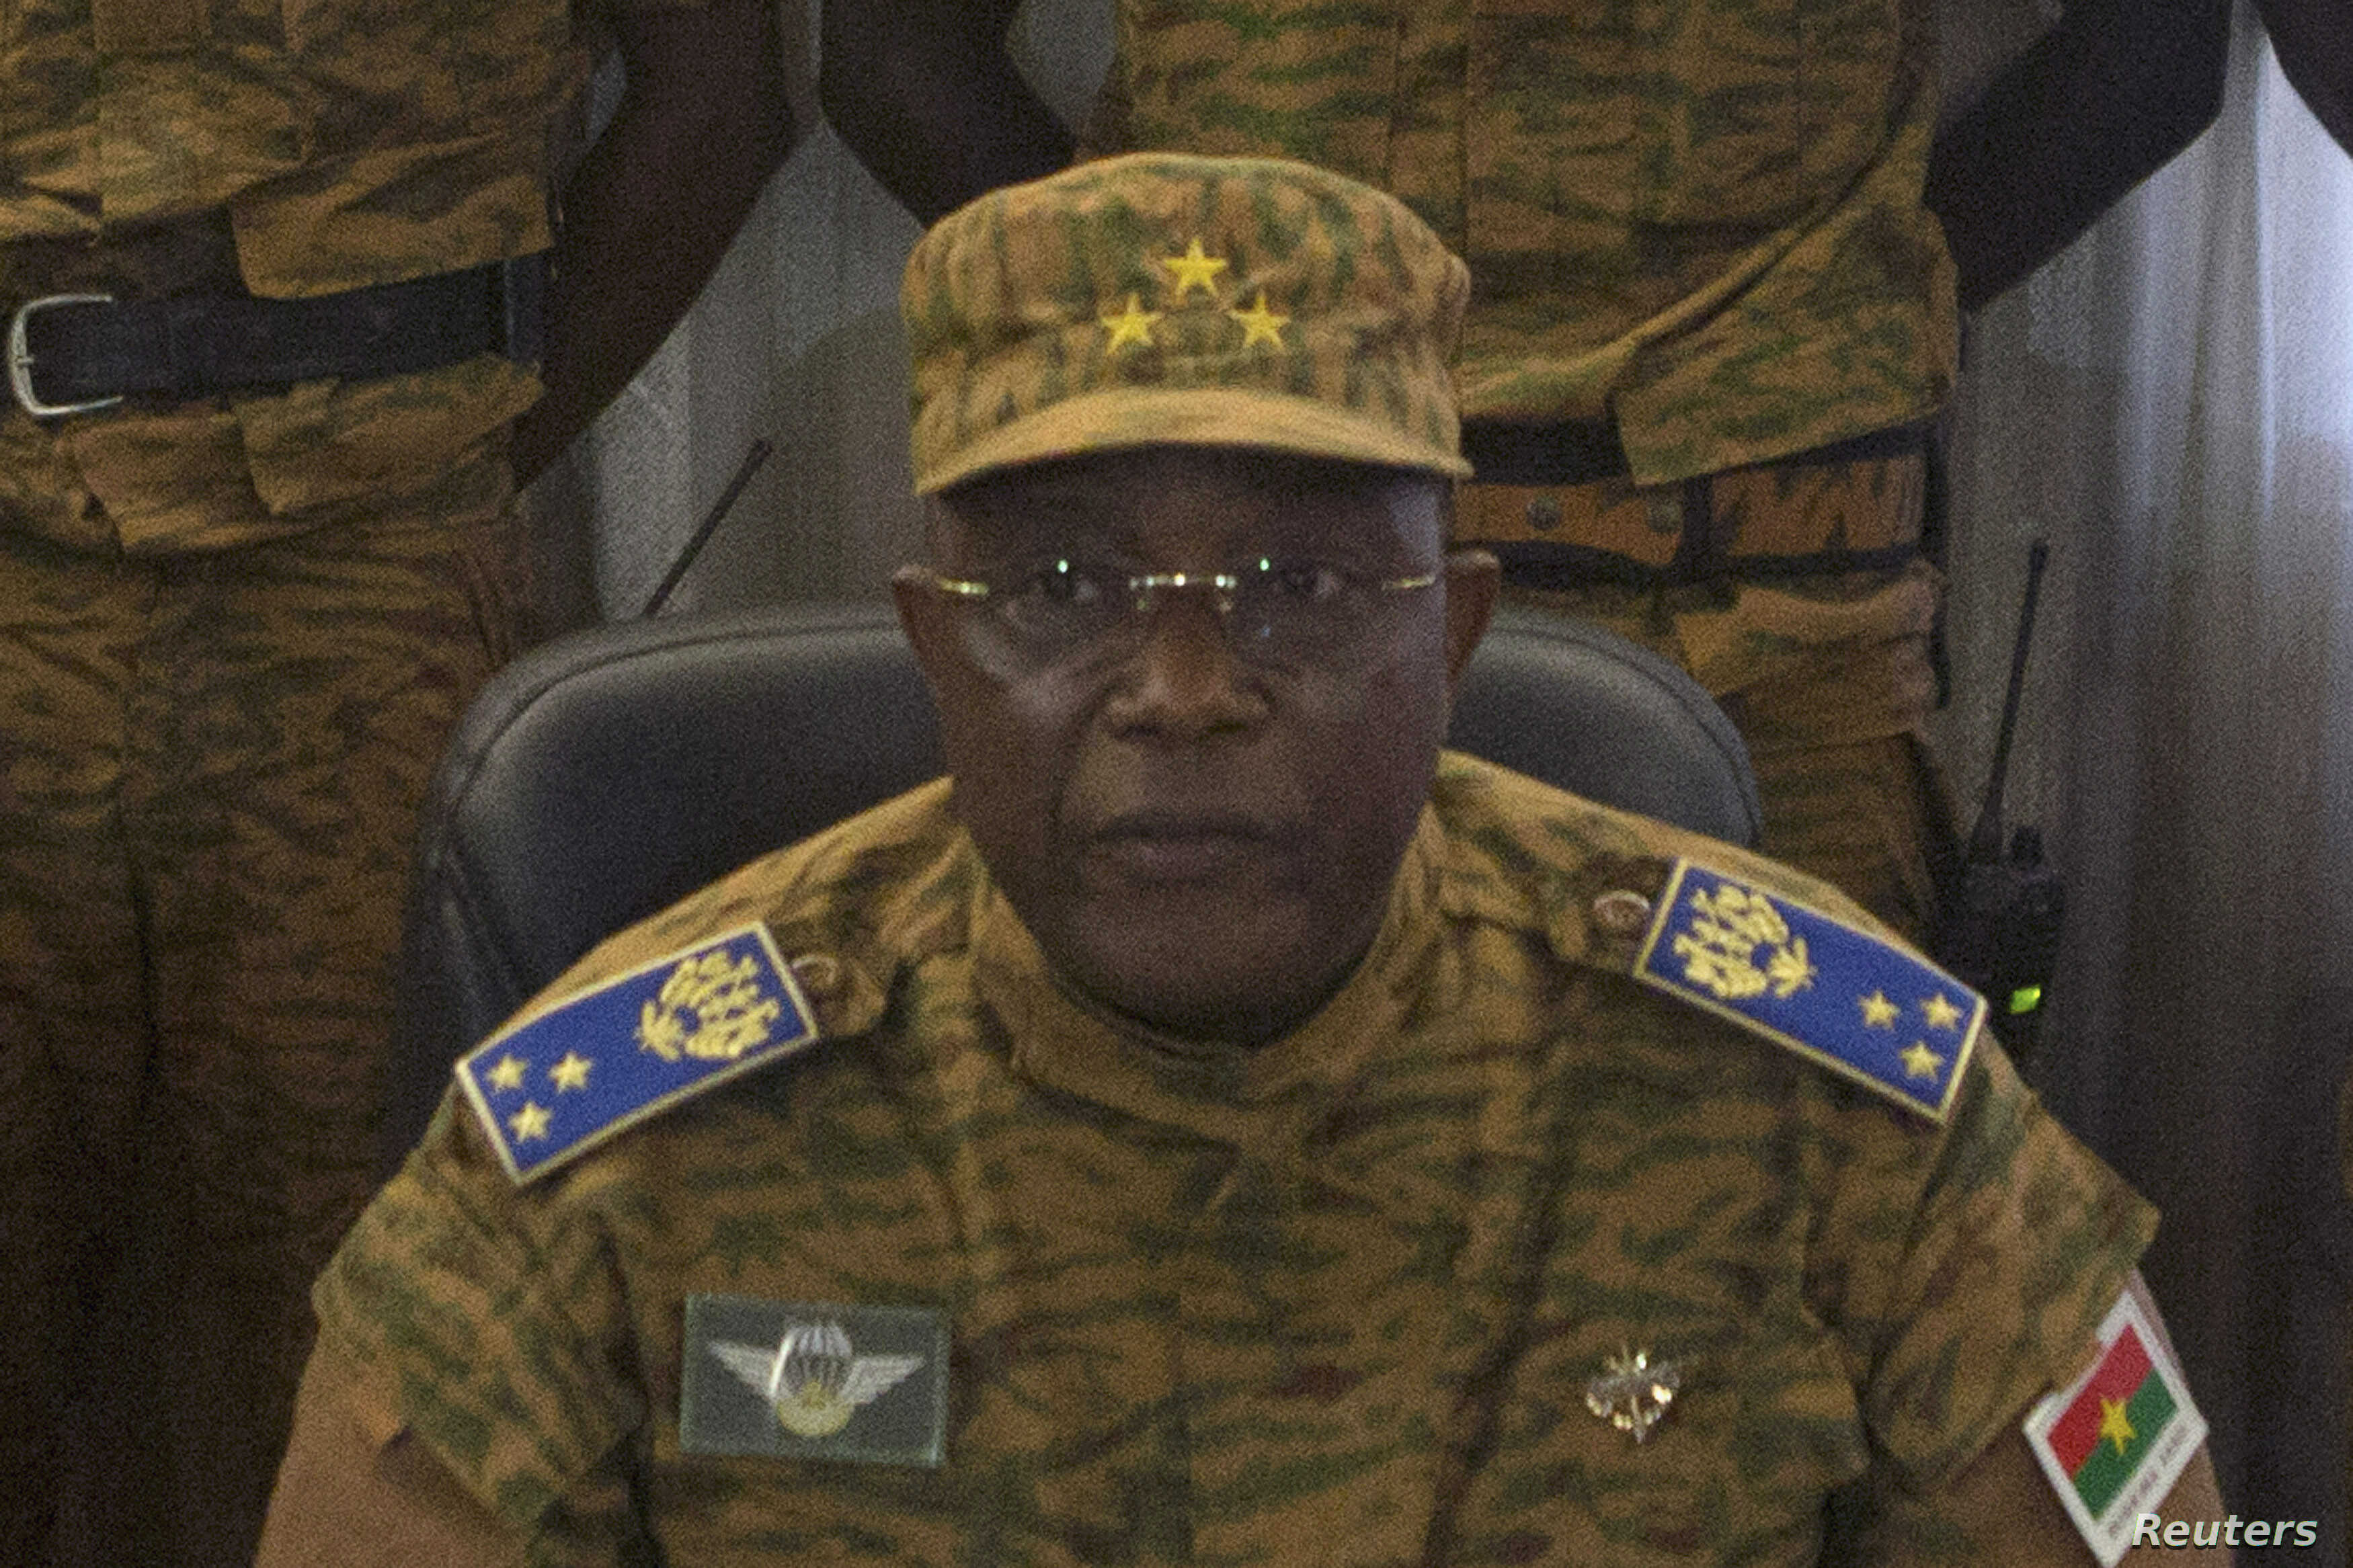 Burkina Faso's military chief General Honore Traore speaks at a news conference announcing his takeover of power, at army headquarters in Ouagadougou, capital of Burkina Faso, Oct. 31, 2014.